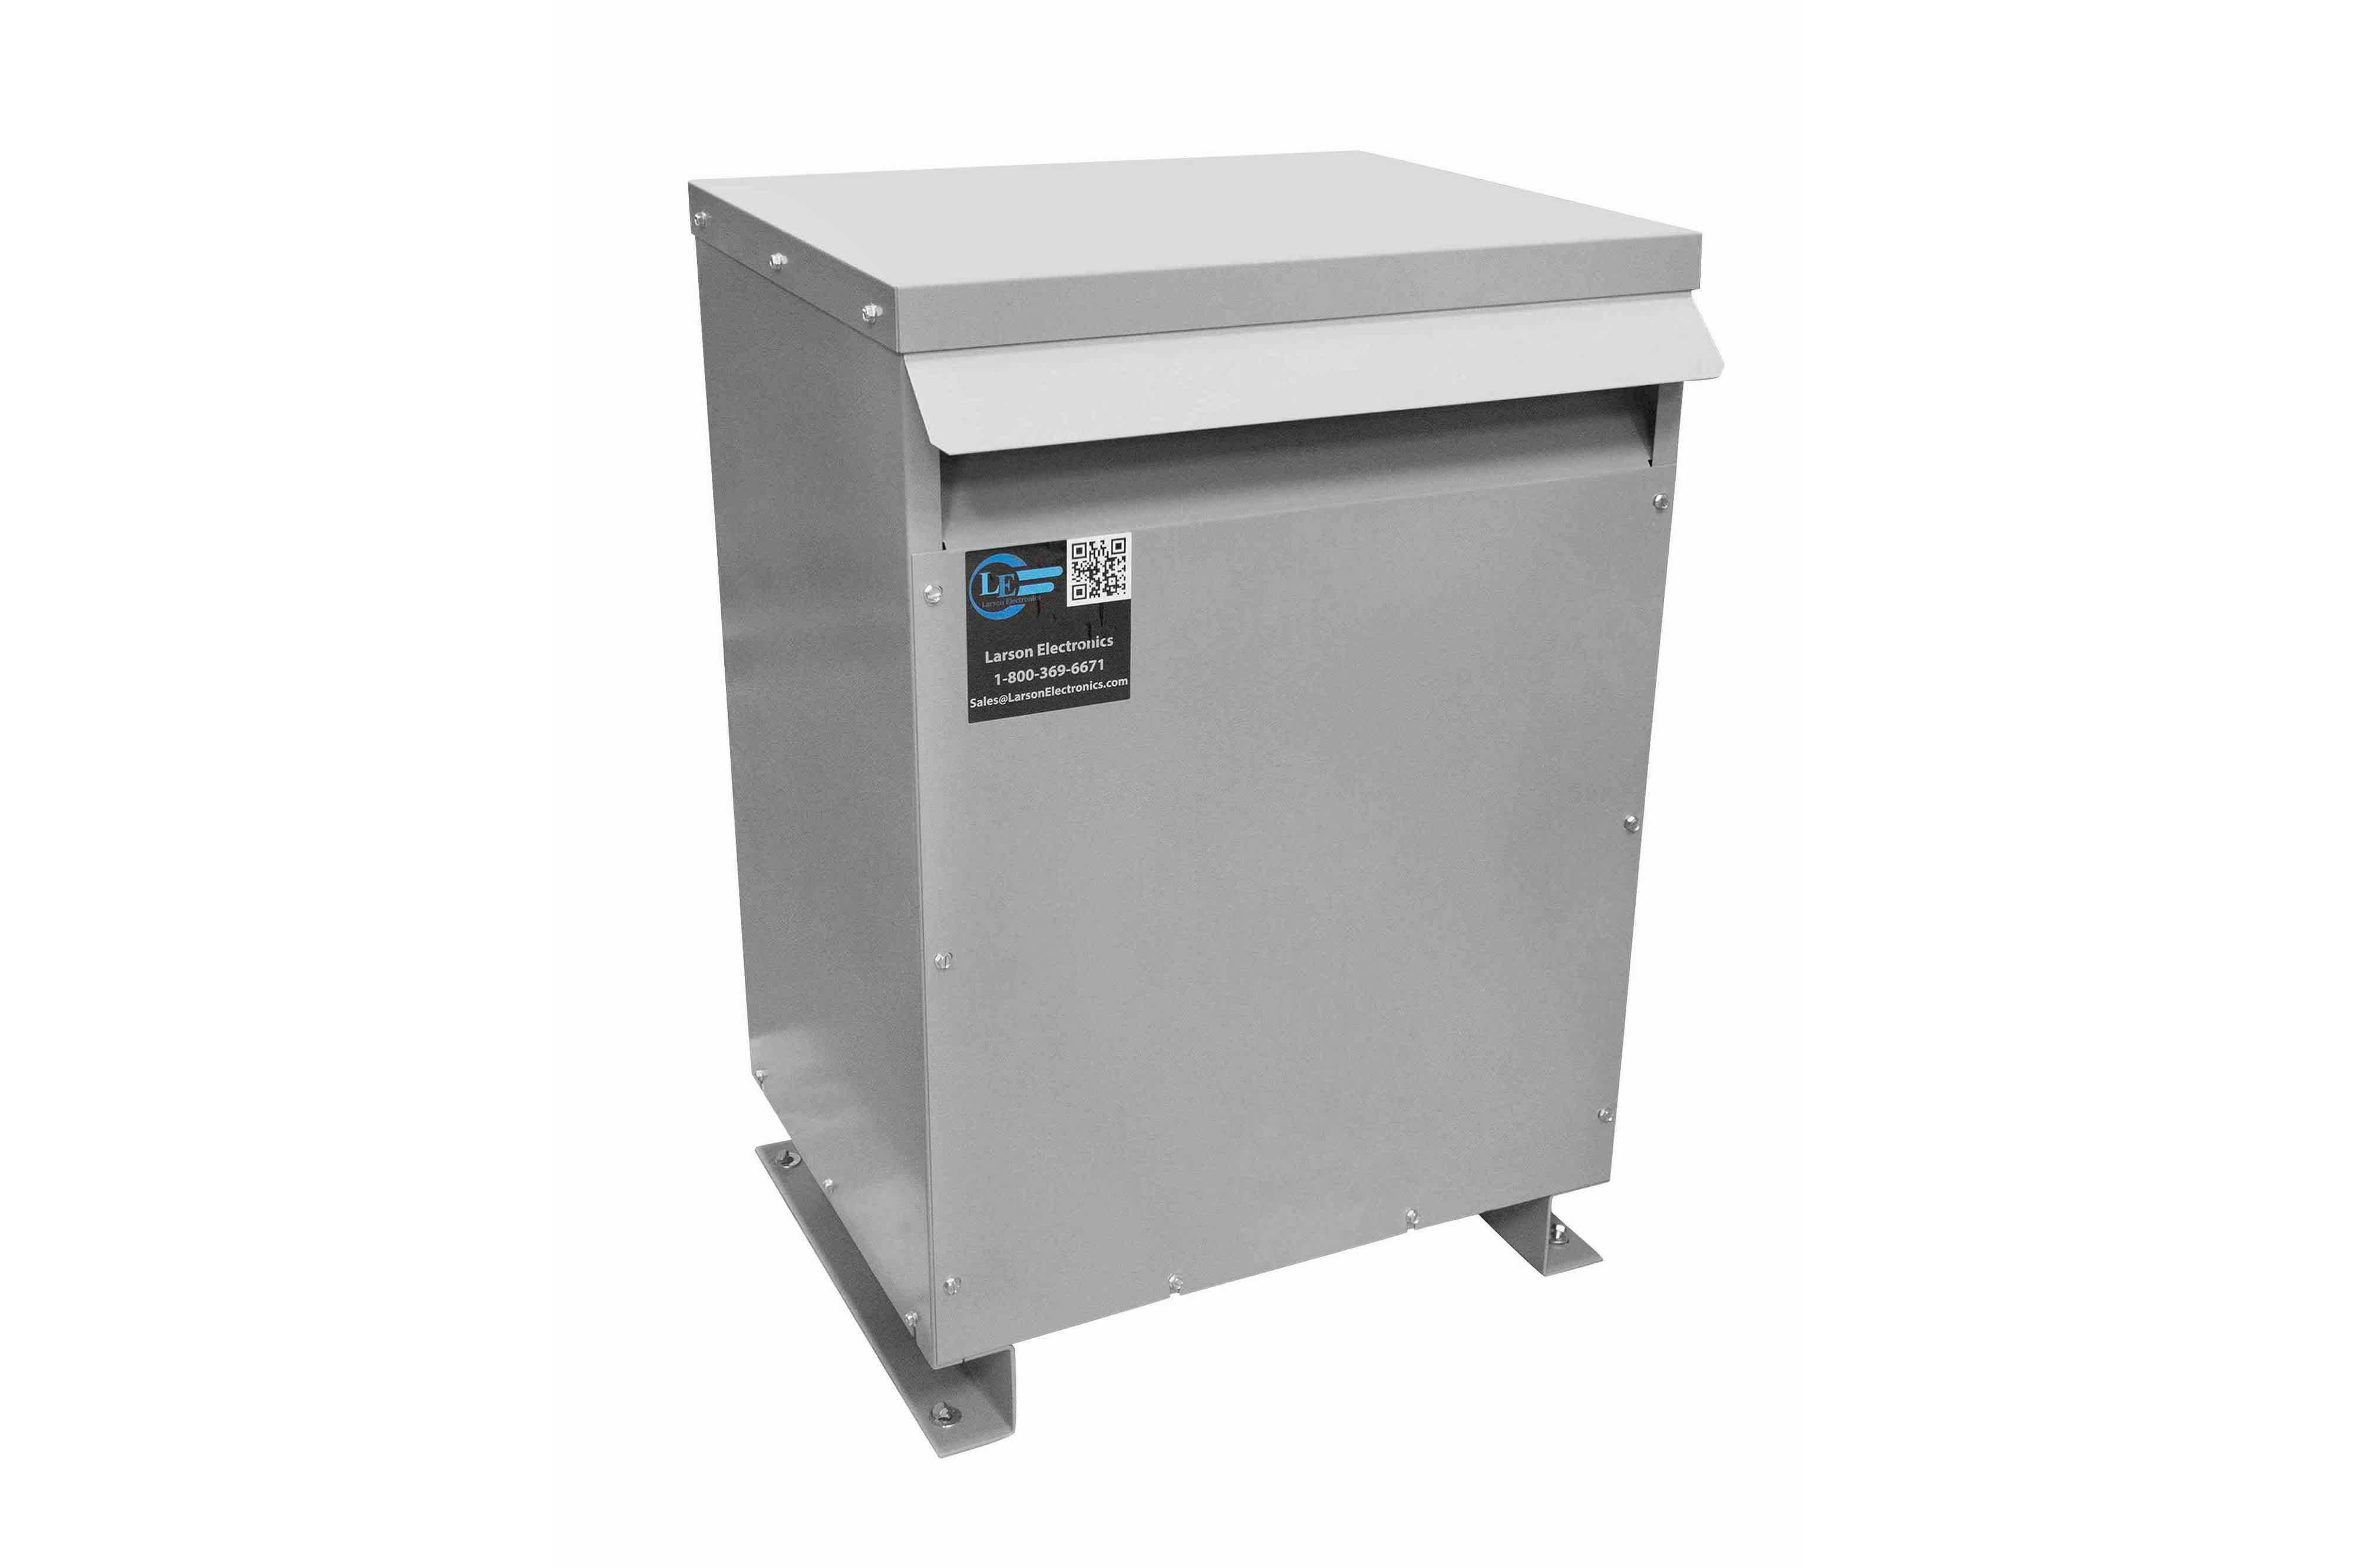 1000 kVA 3PH DOE Transformer, 415V Delta Primary, 240V/120 Delta Secondary, N3R, Ventilated, 60 Hz